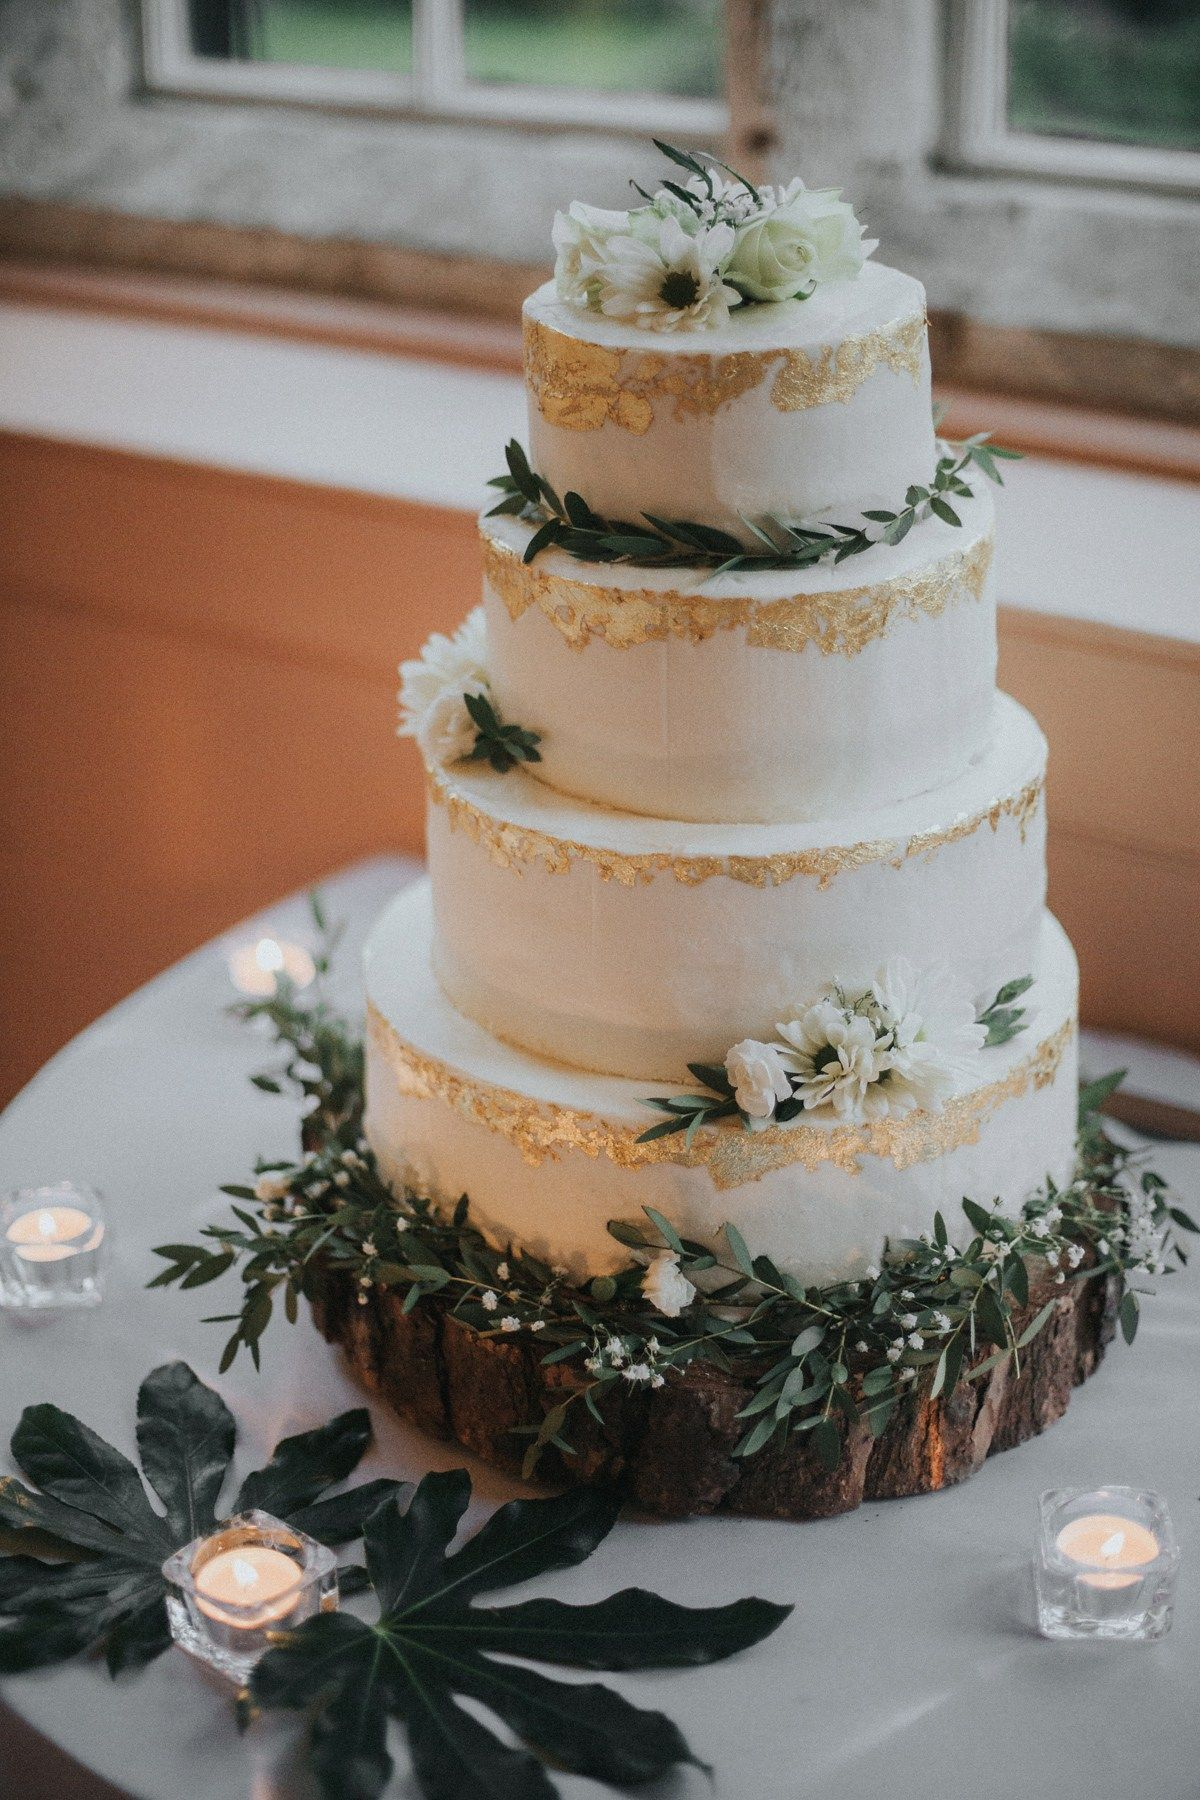 Four tier iced cake decorated with gold leaf and fresh flowers